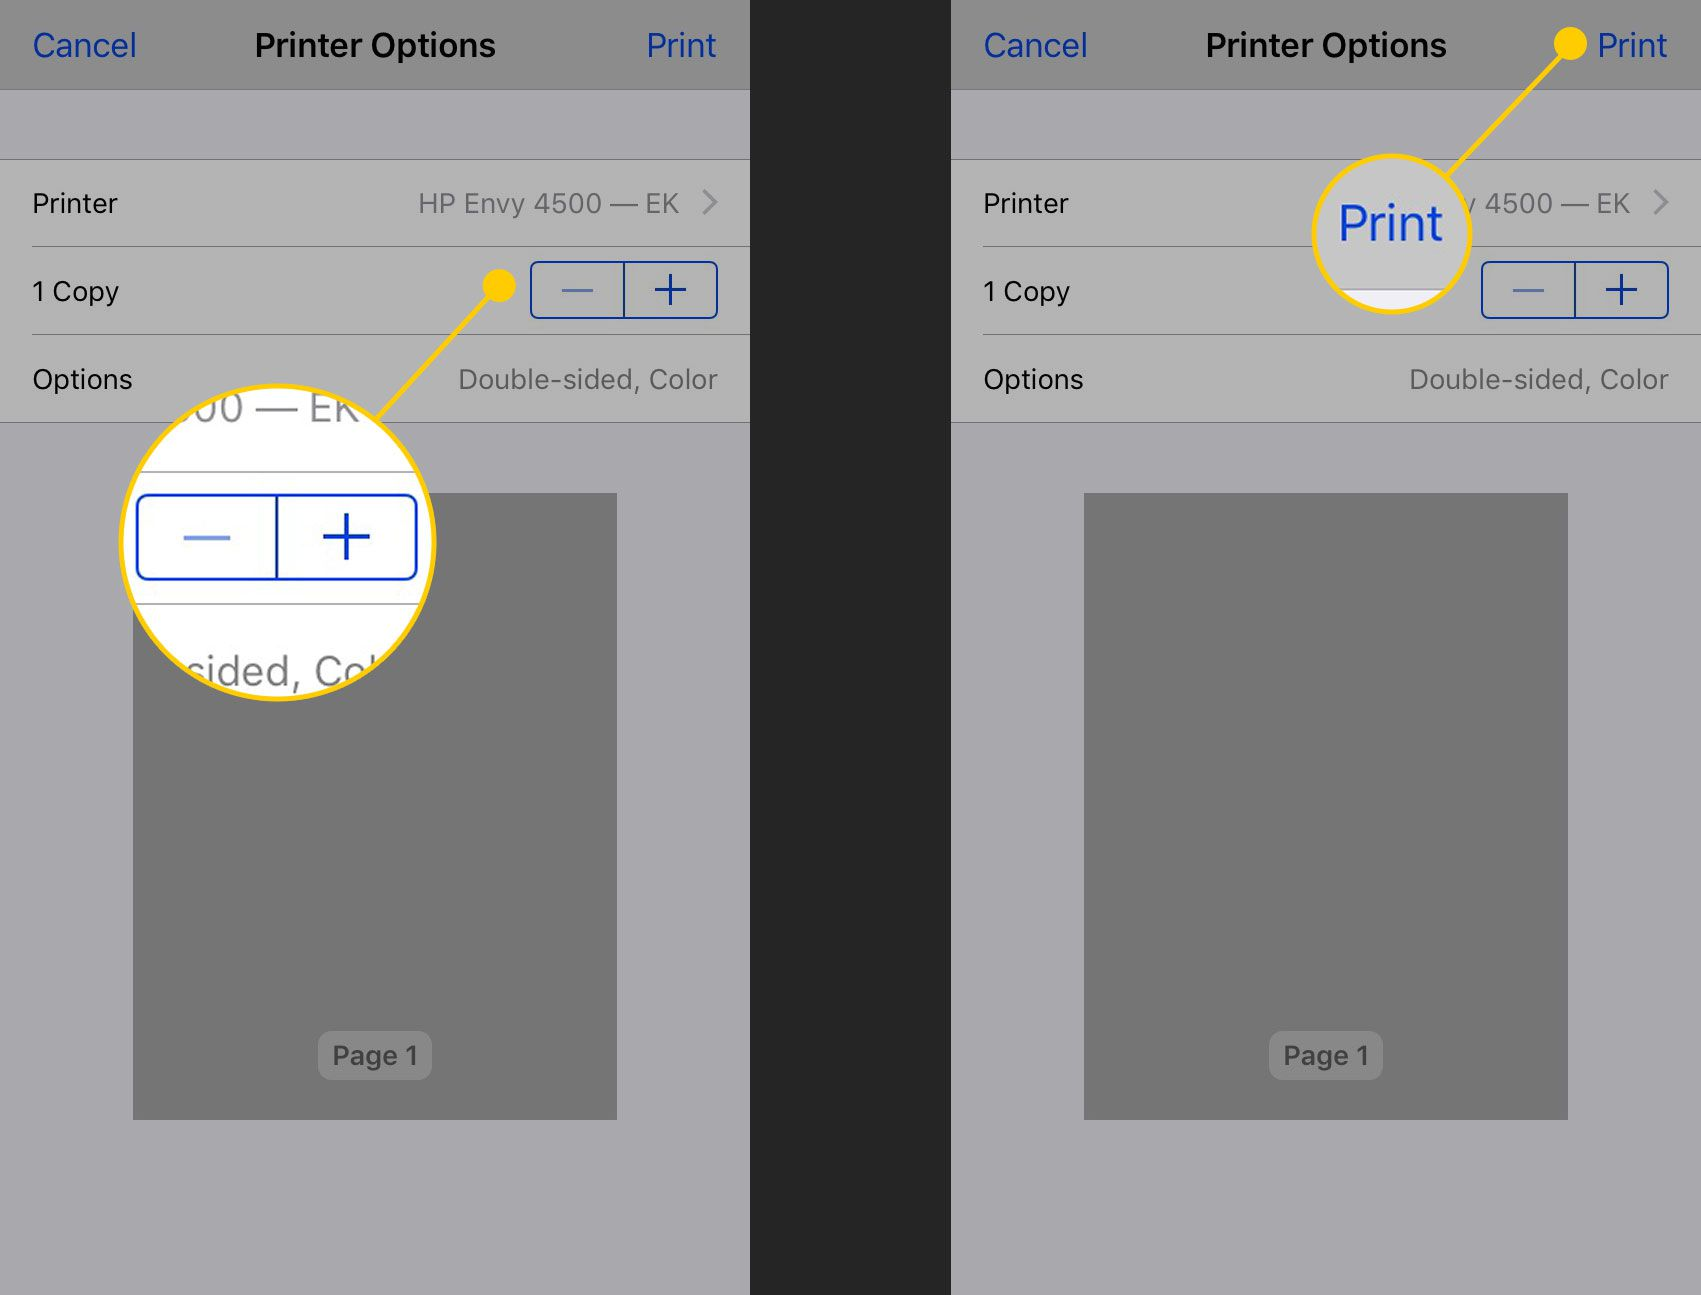 How to Print From Your iPhone With AirPrint